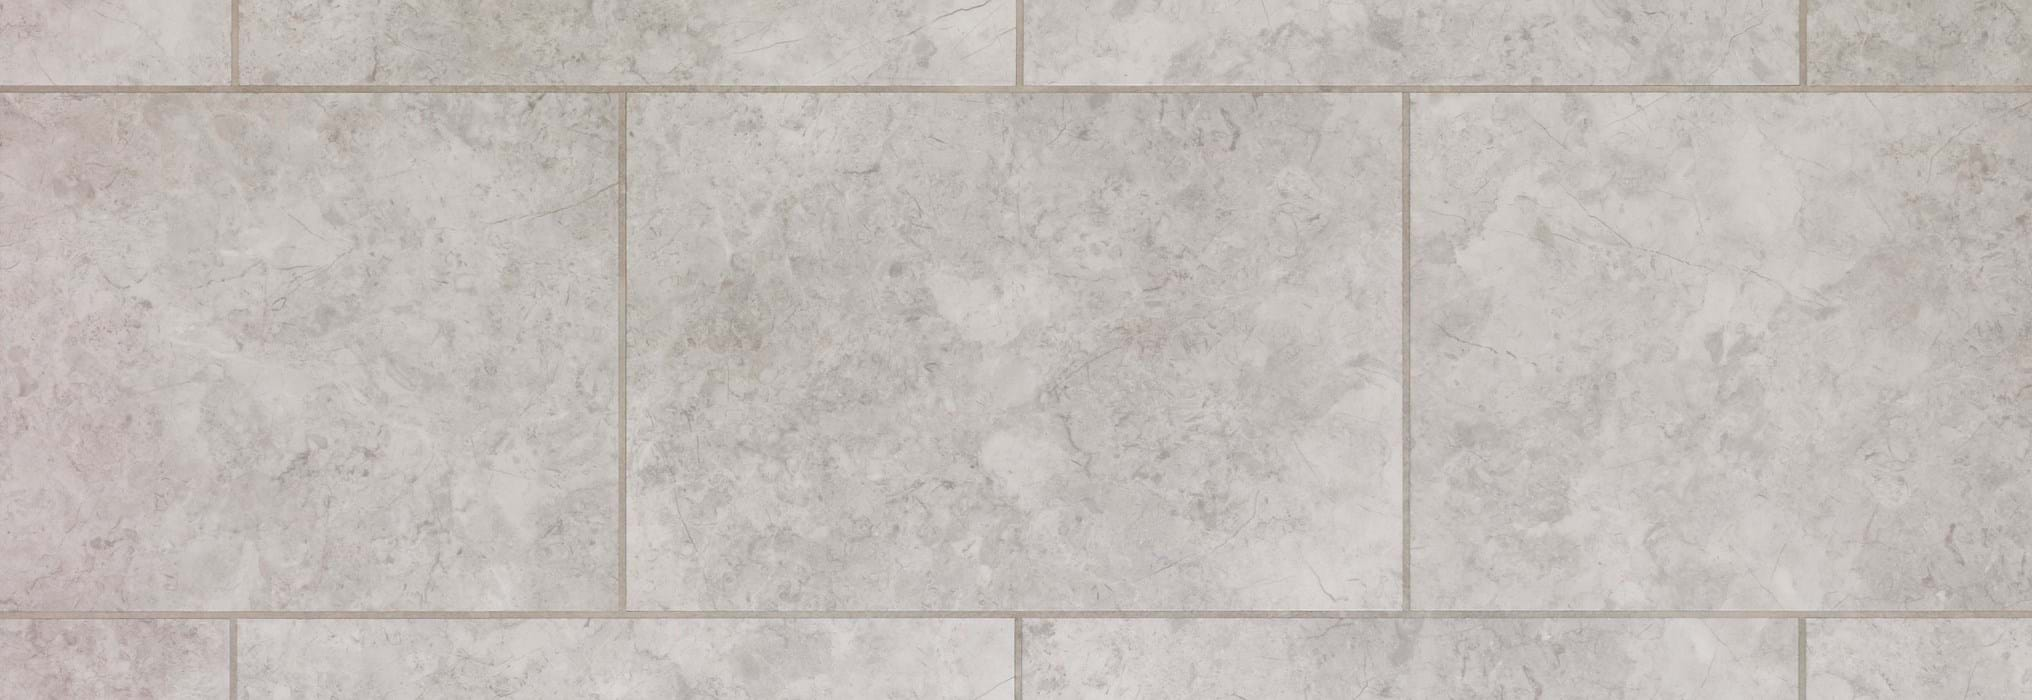 Amtico International: Bottocino Grey - AM5S3598